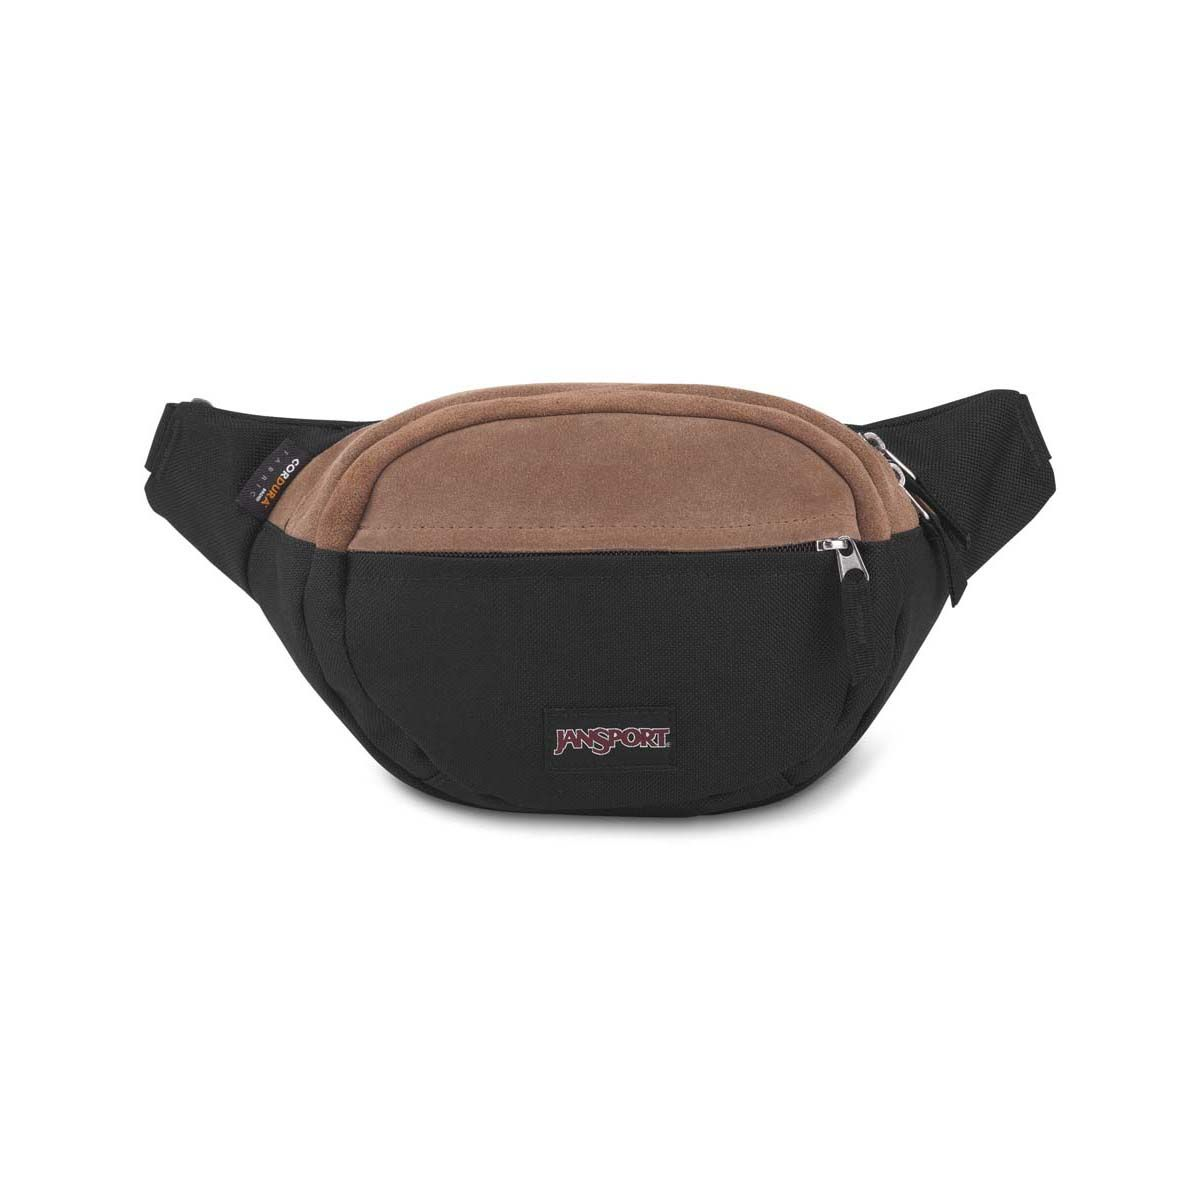 JanSport Fifth Ave Suede Fanny Pack in Black